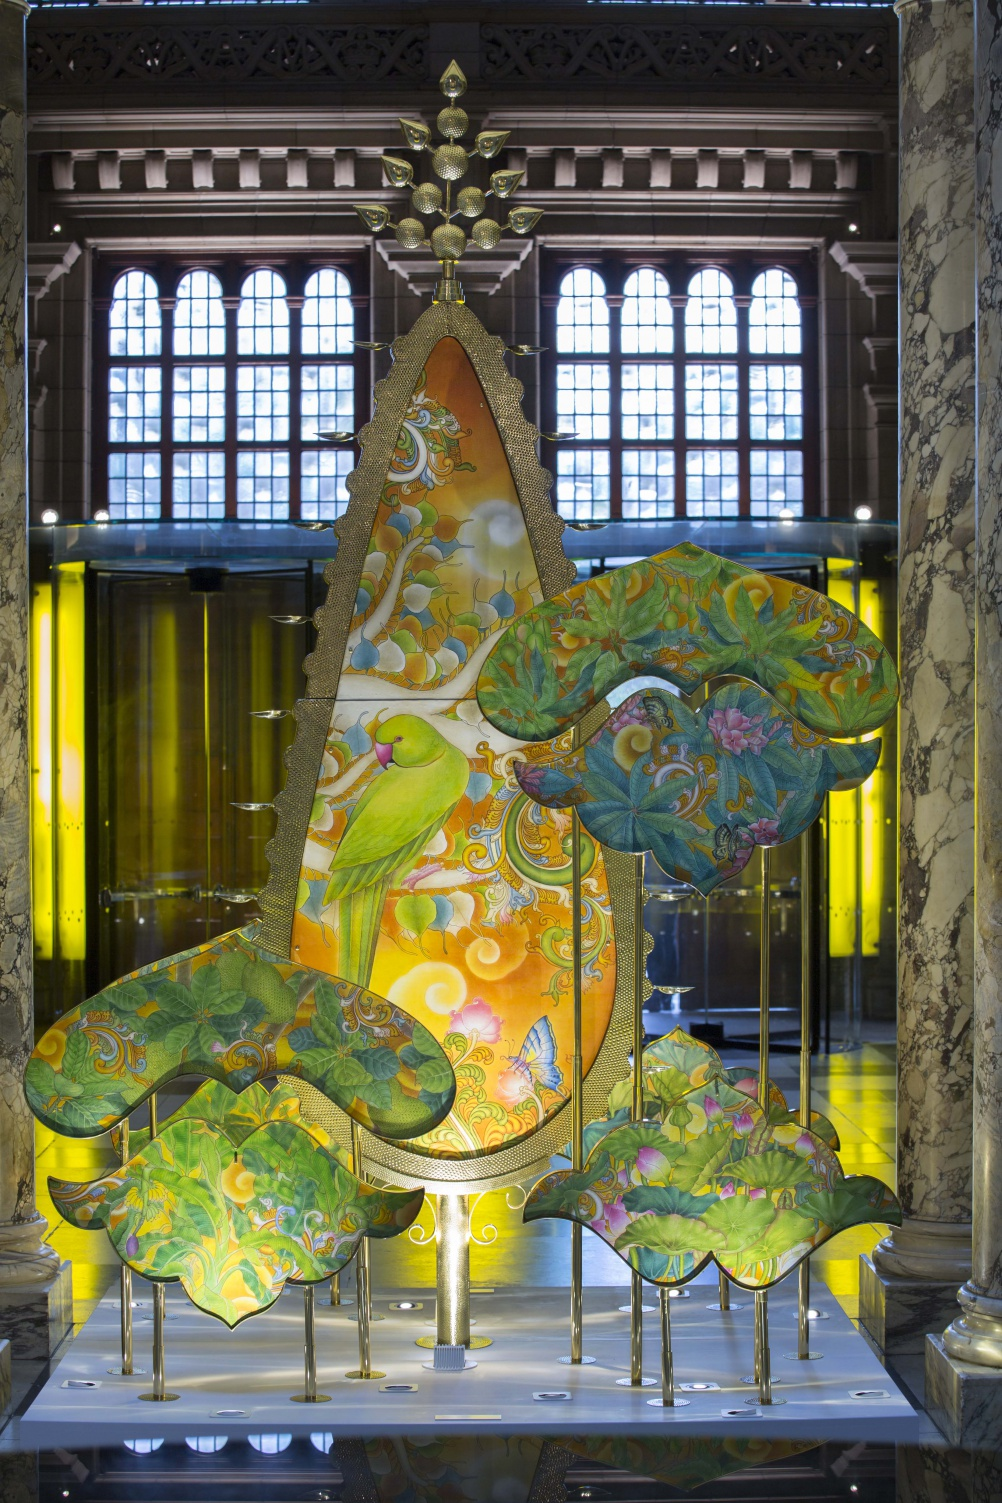 Kalpatharu: The Wishing Tree, by Sarthak and Sahil at the V&A, 2015. © Victoria and Albert Museum, London